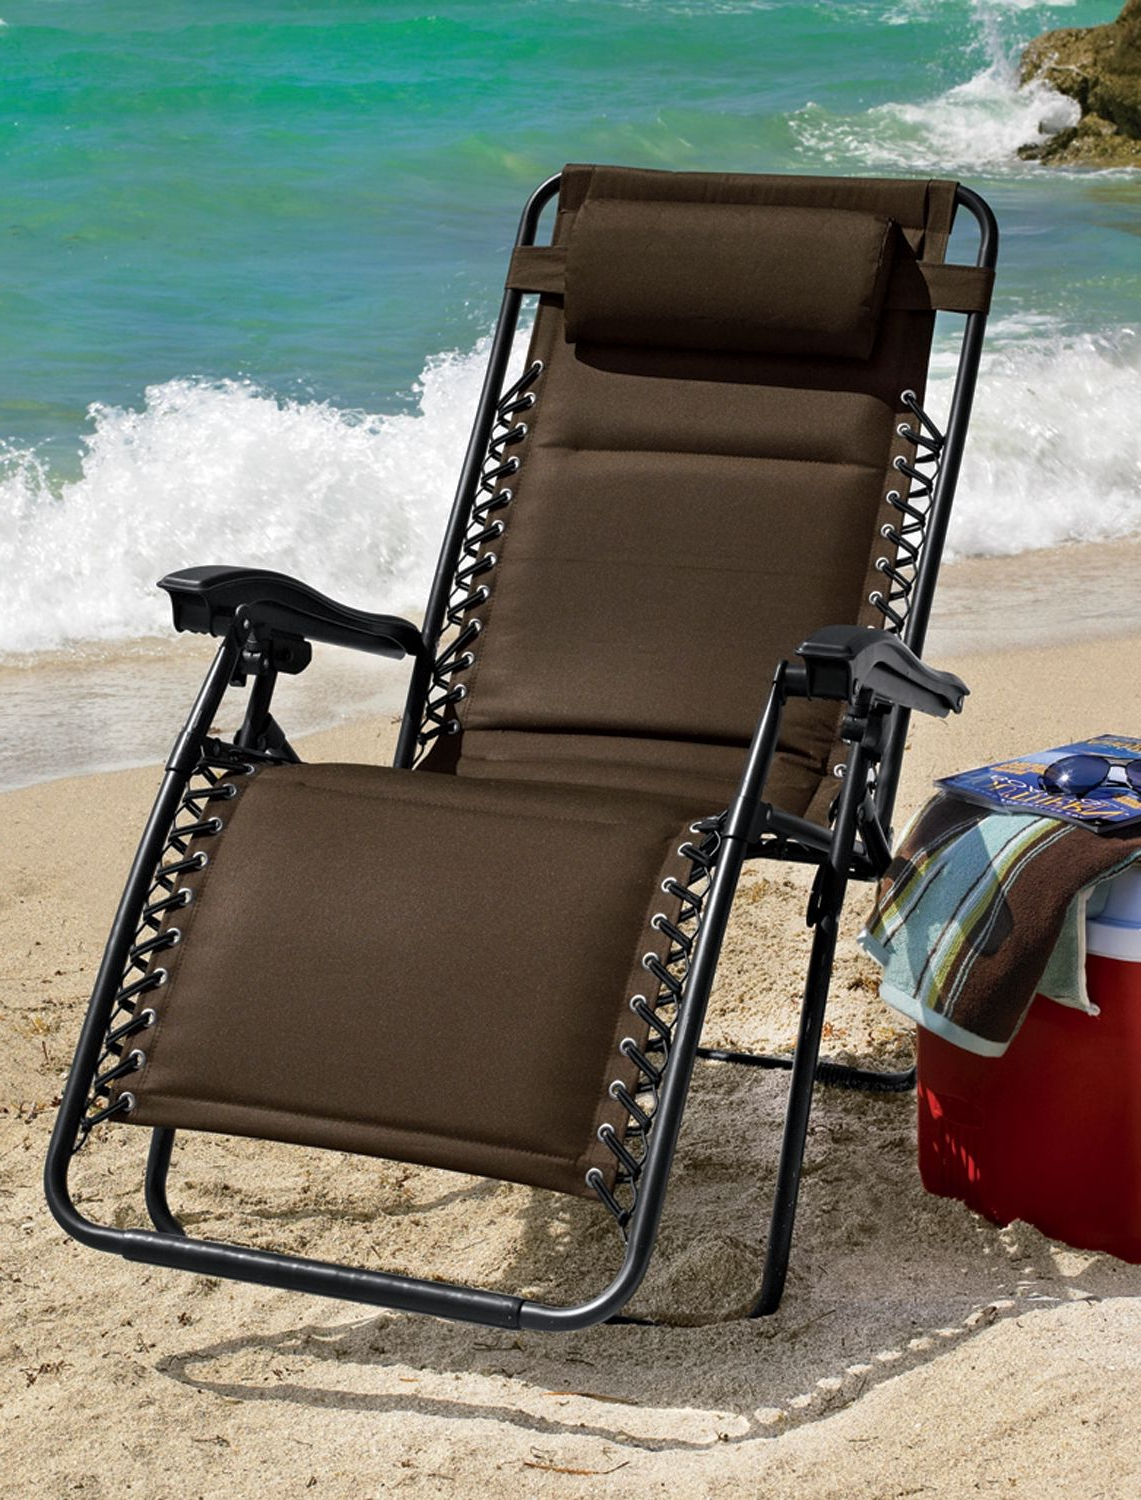 Extra Wide Portable Chairs With Regard To Oversize Wider Armrest Padded Lounge Chairs (View 5 of 25)